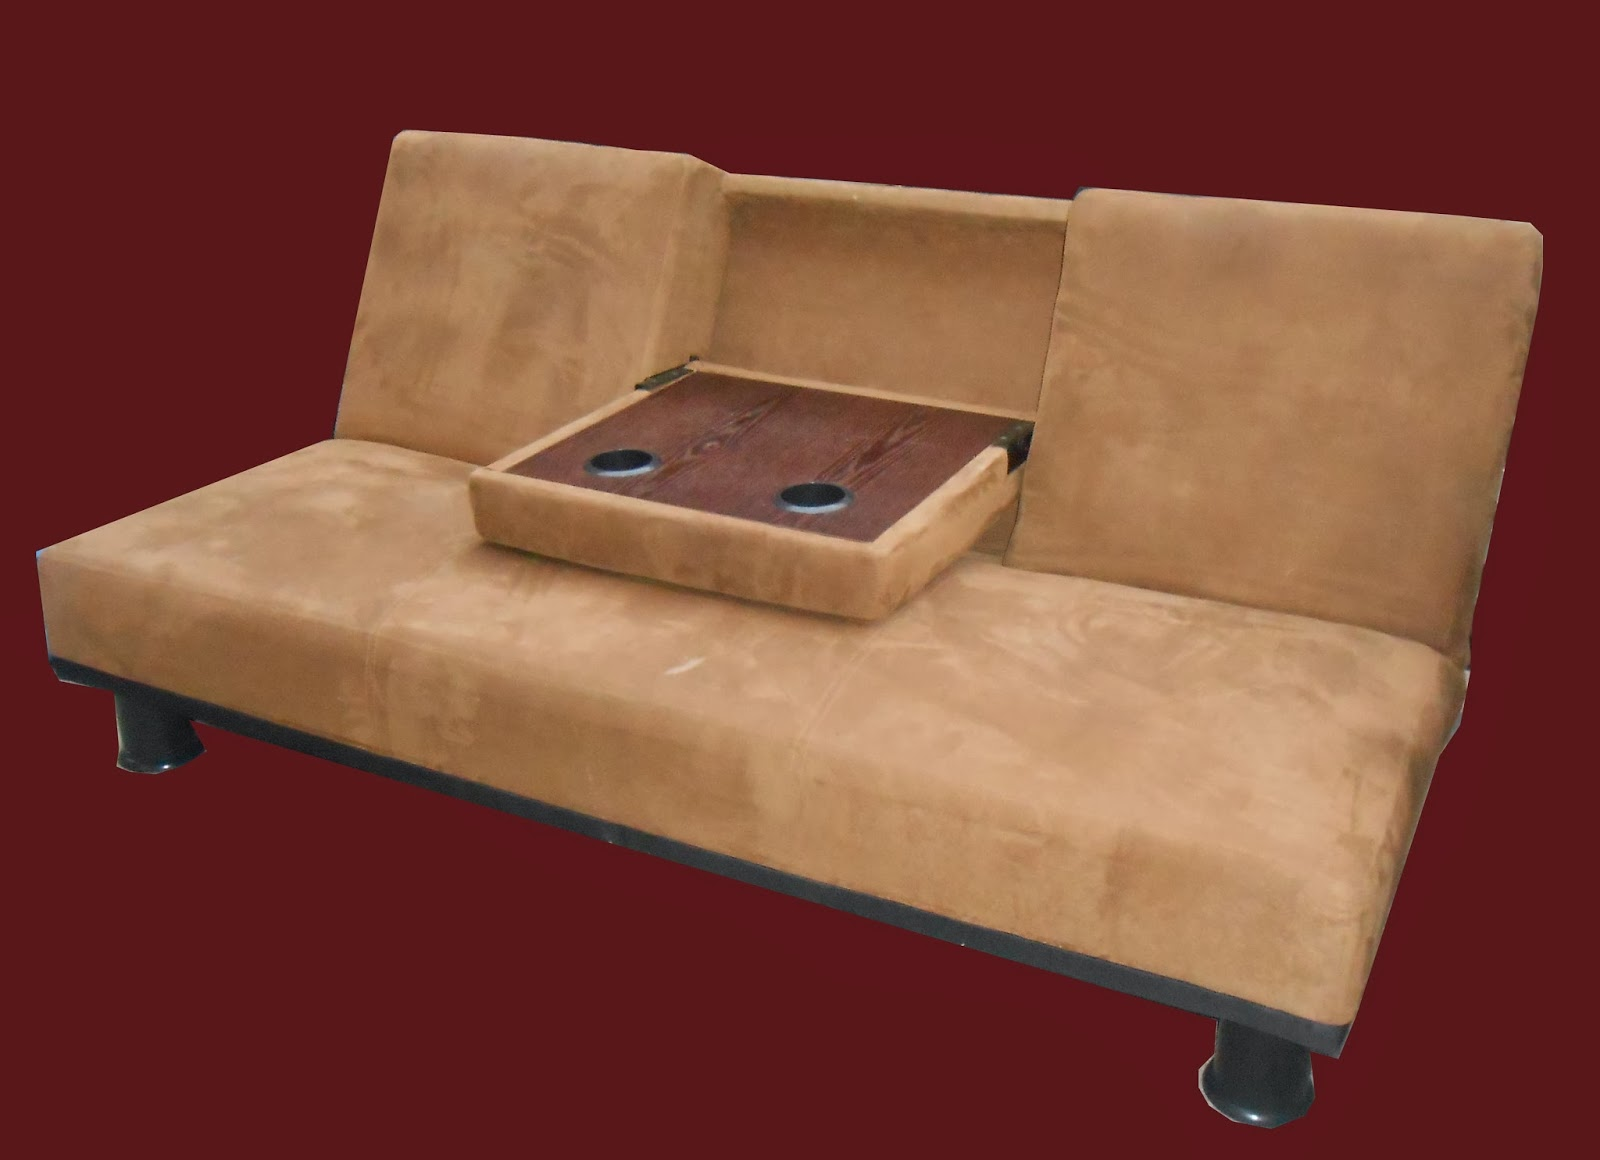 tan futon with cup holders sold uhuru furniture  u0026 collectibles  tan futon with cup holders sold  rh   uhurufurniturephilly blogspot